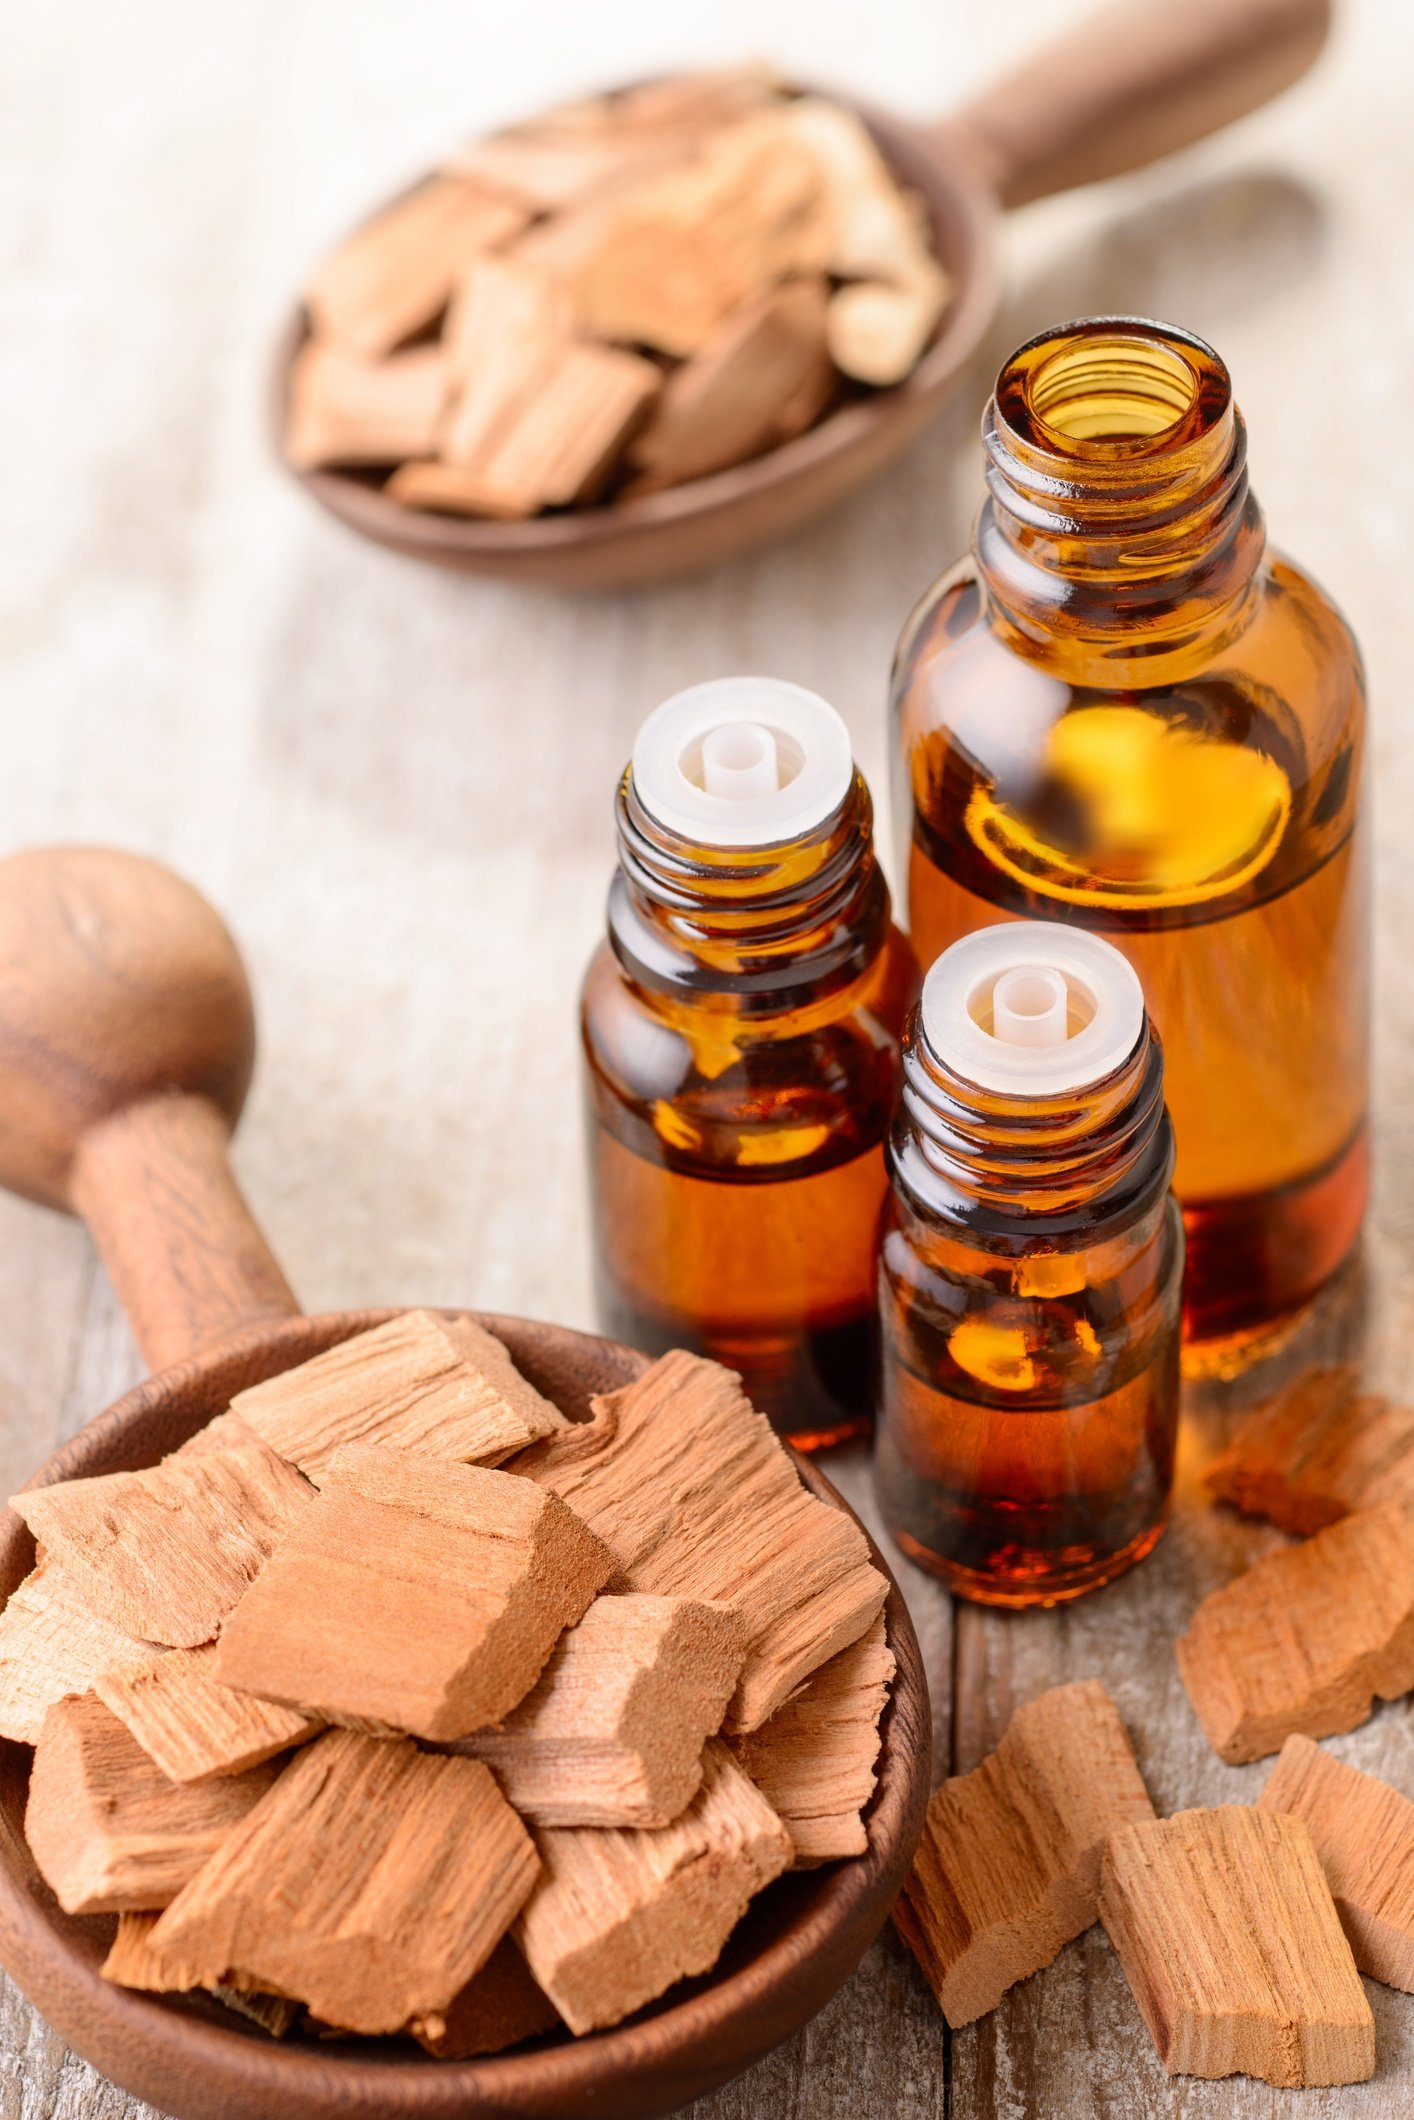 Sandalwood oil for your holiday pleasure